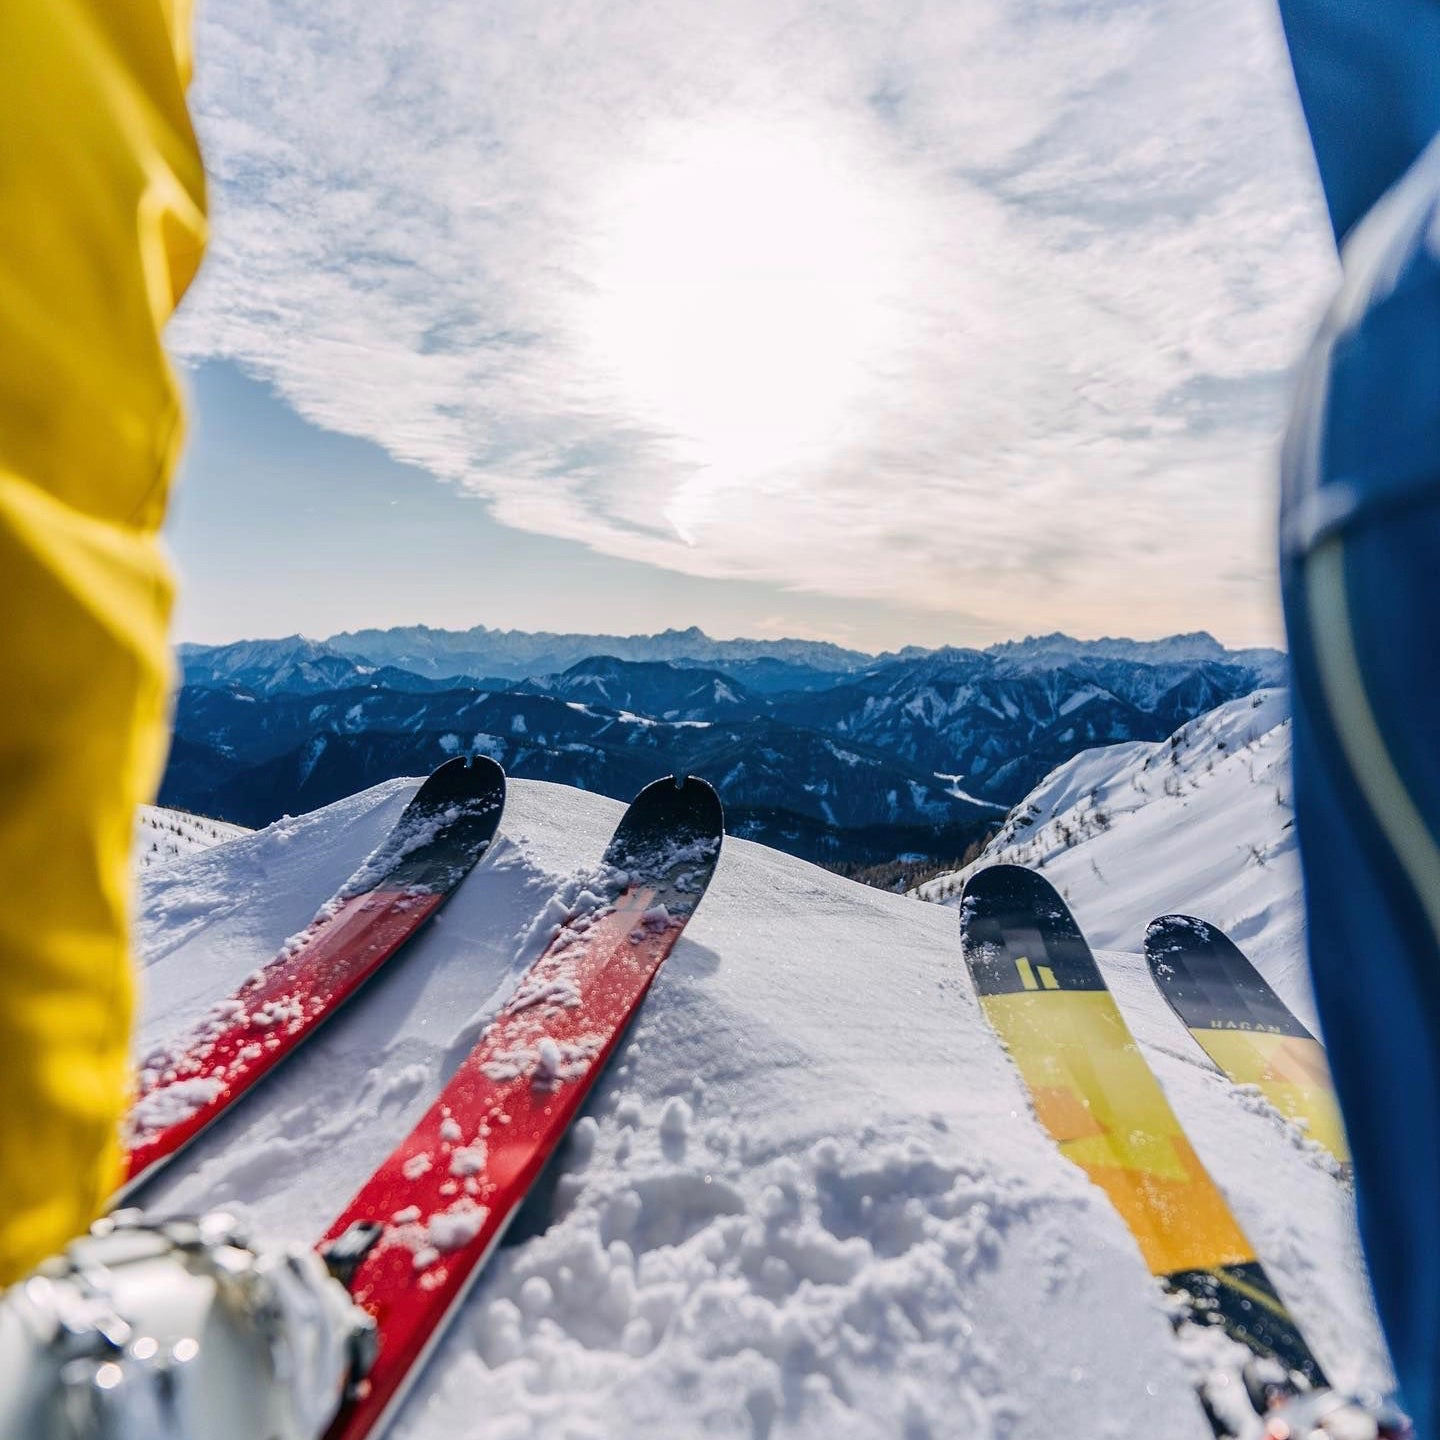 A pair of skis backdropped by snowy mountaintops.